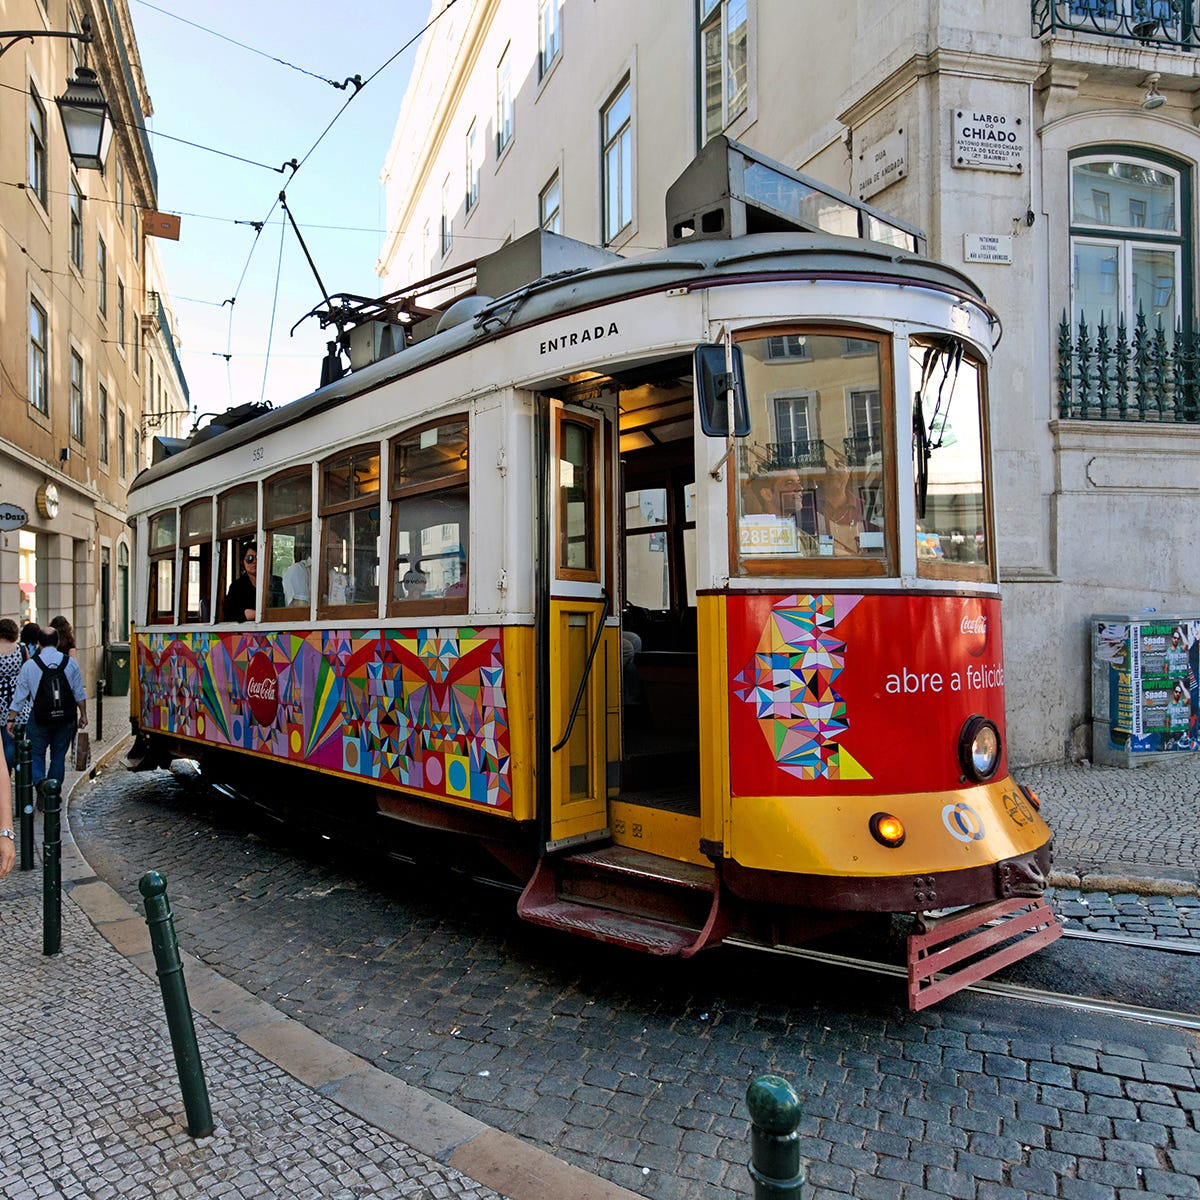 Lisbon's trolleys can get unbearably crowded, so have a plan if you want to ride one.